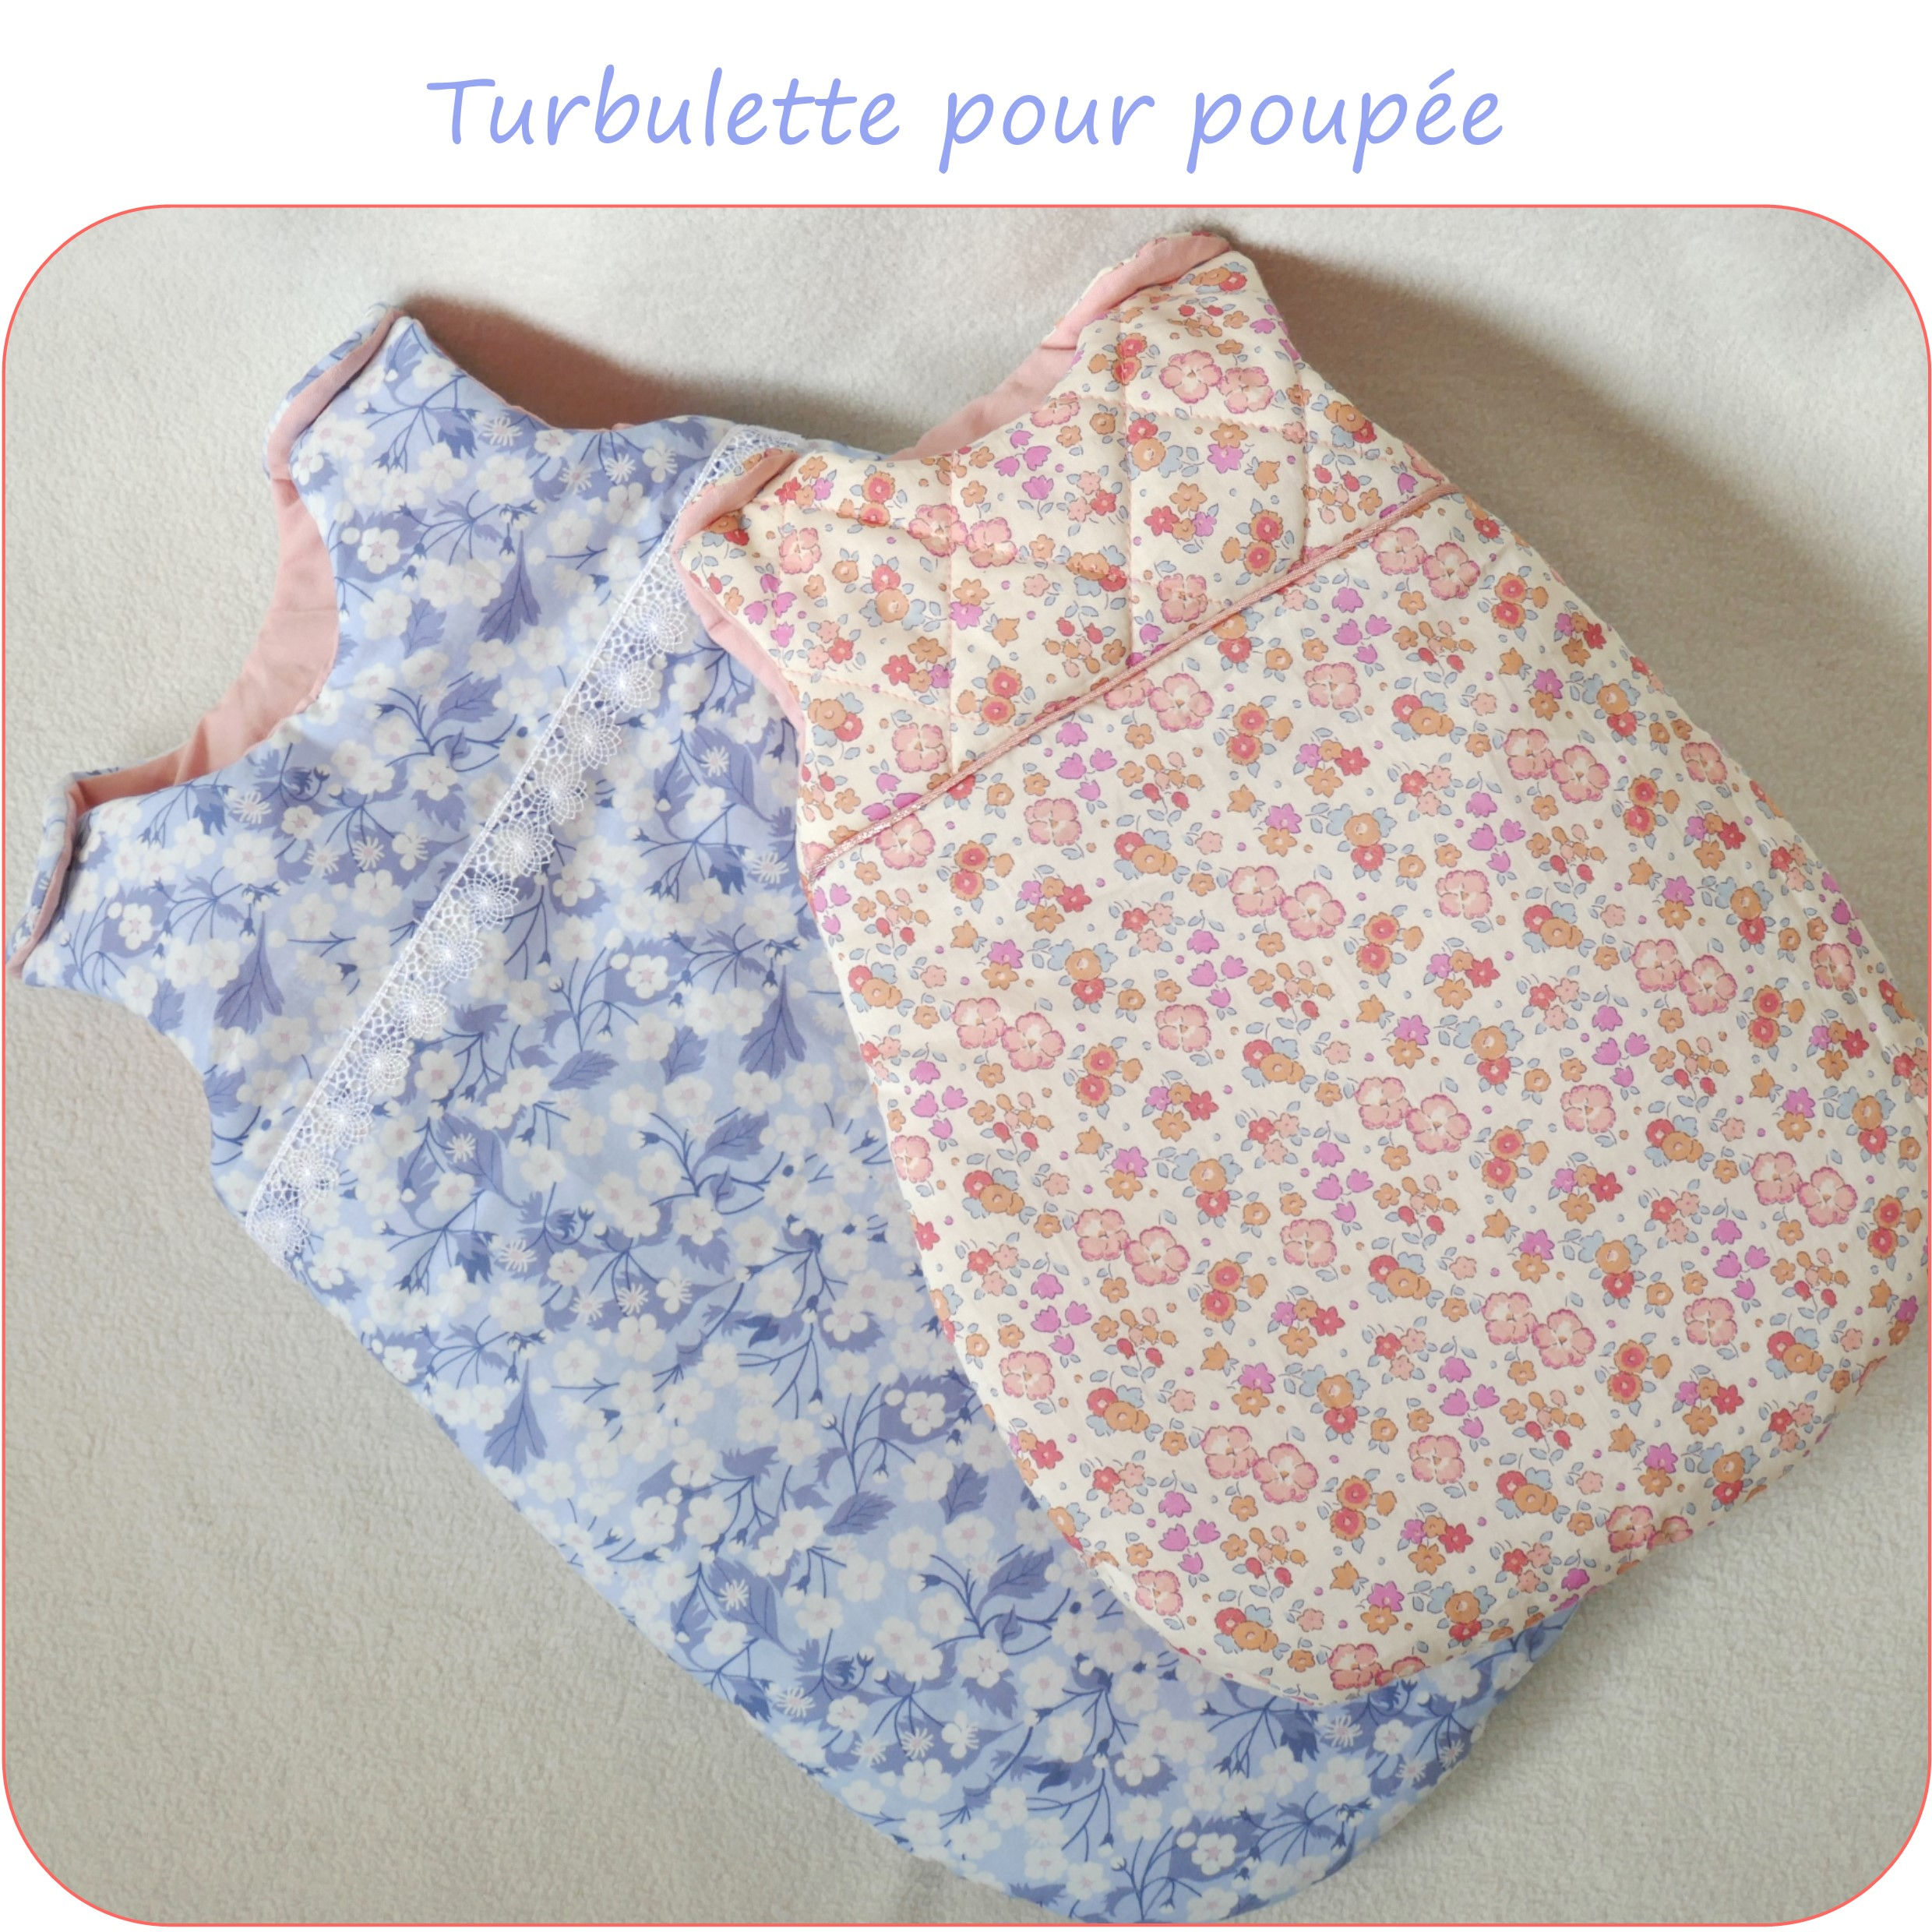 TurbulettePoupee-PresentationSite_PetitsDom